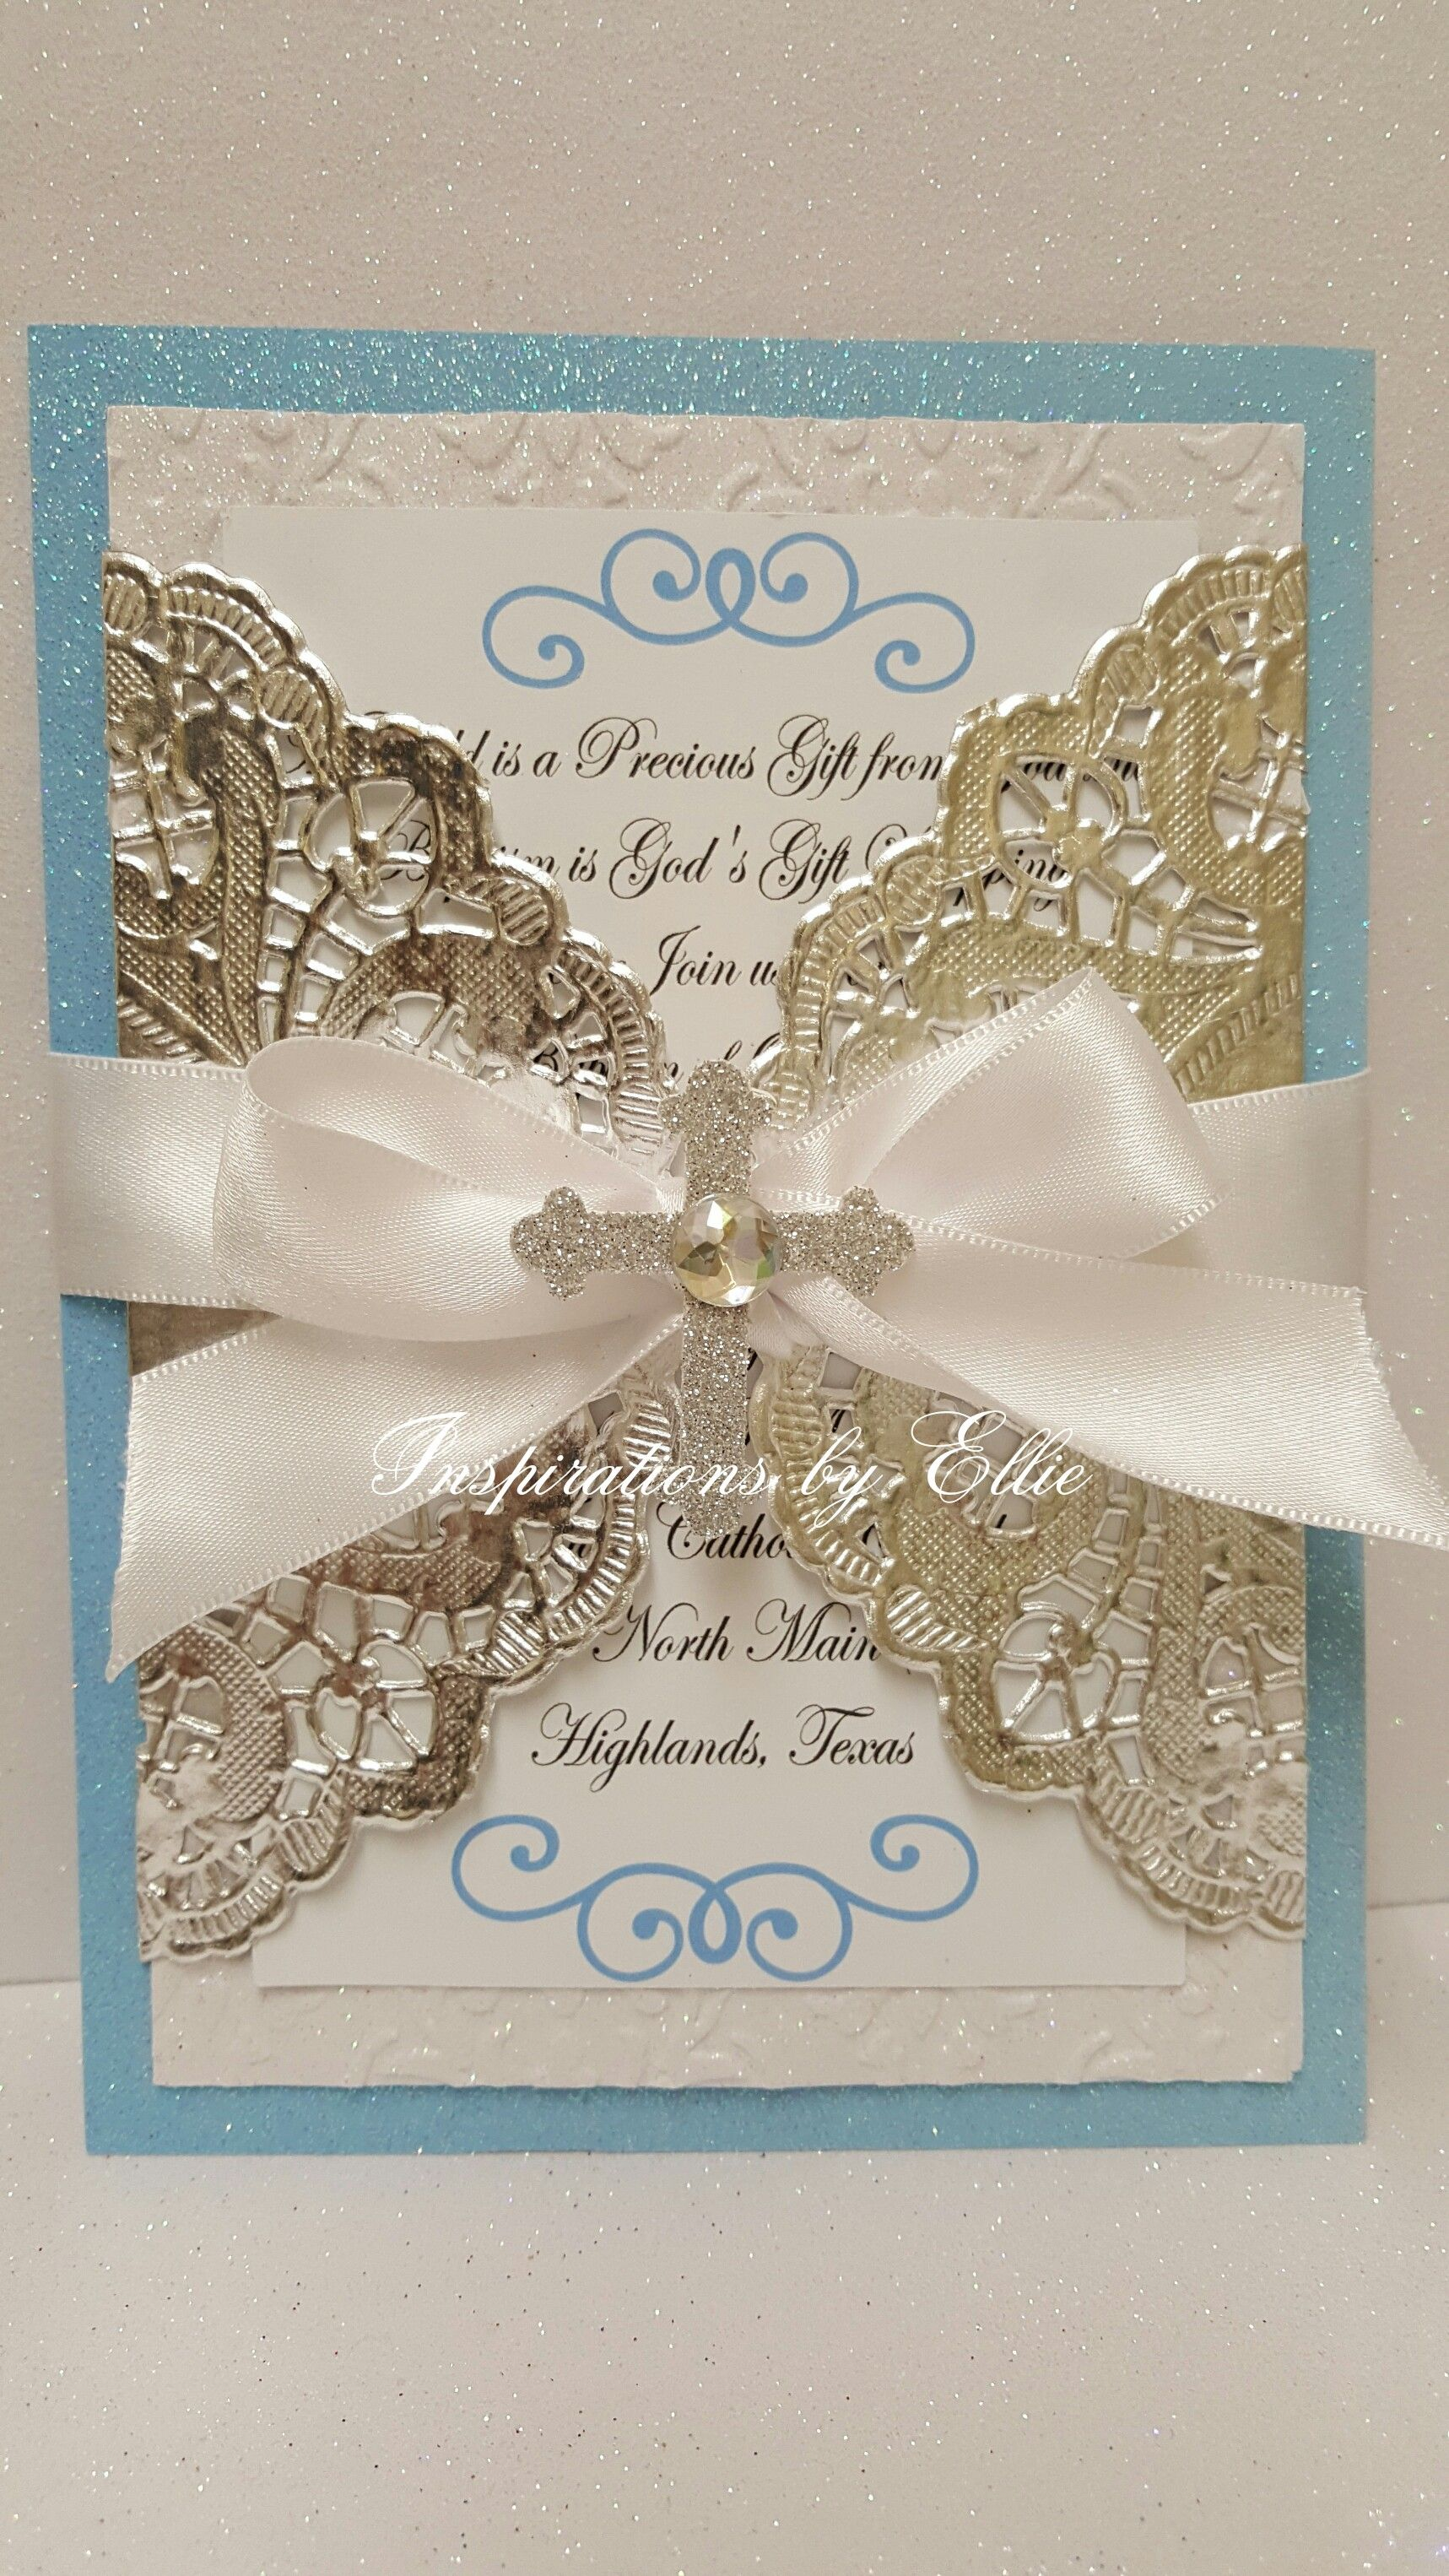 Boy Baptism Invitations Set of 12 with Cross | Baptism | Pinterest ...